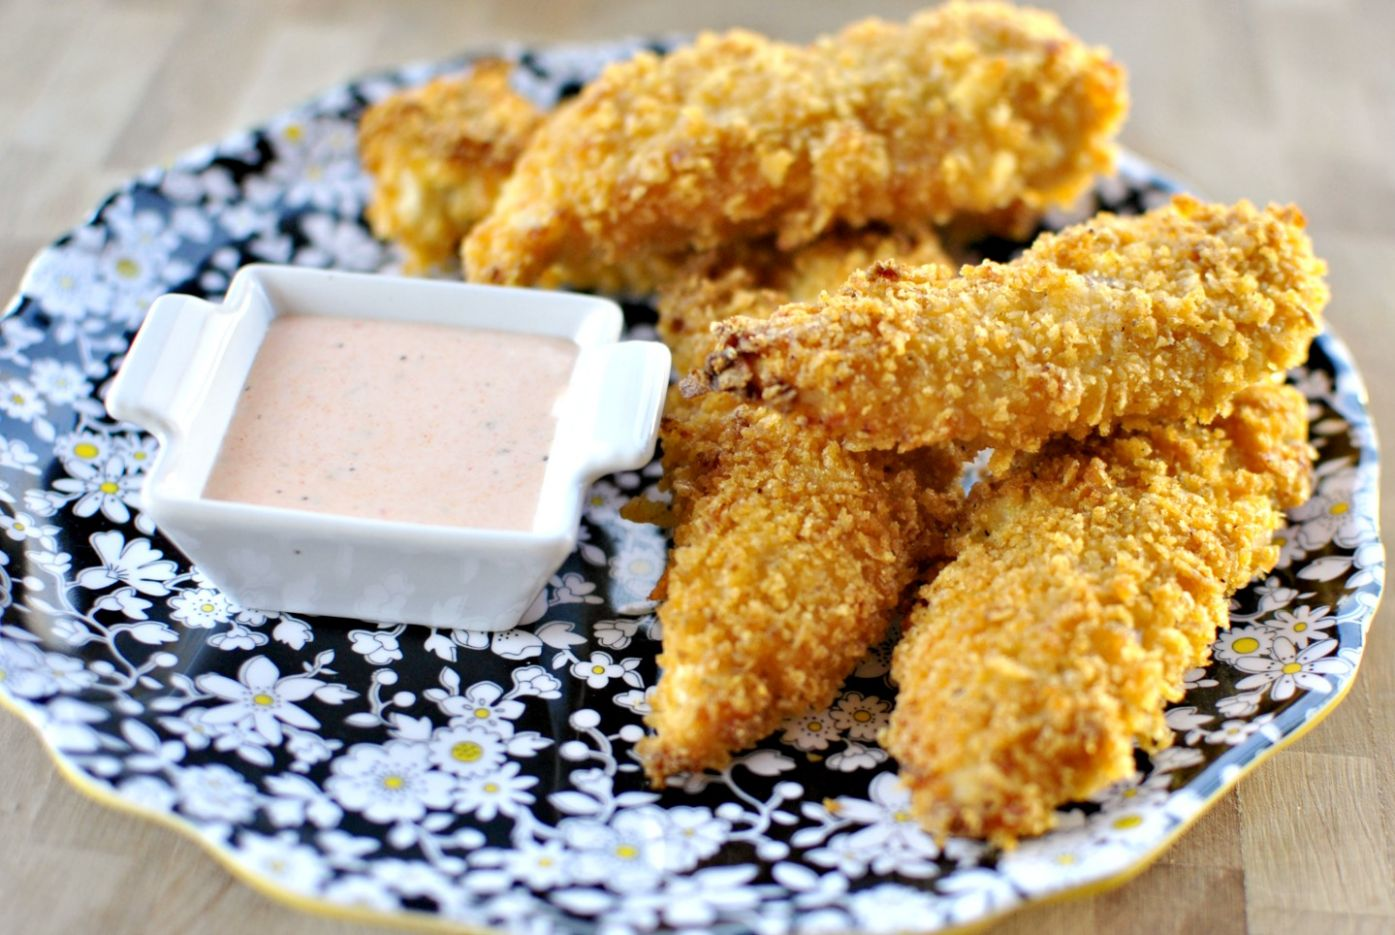 Potato Chip Crusted Chicken Tenders - Simply Scratch - Recipes Using Potato Chip Crumbs